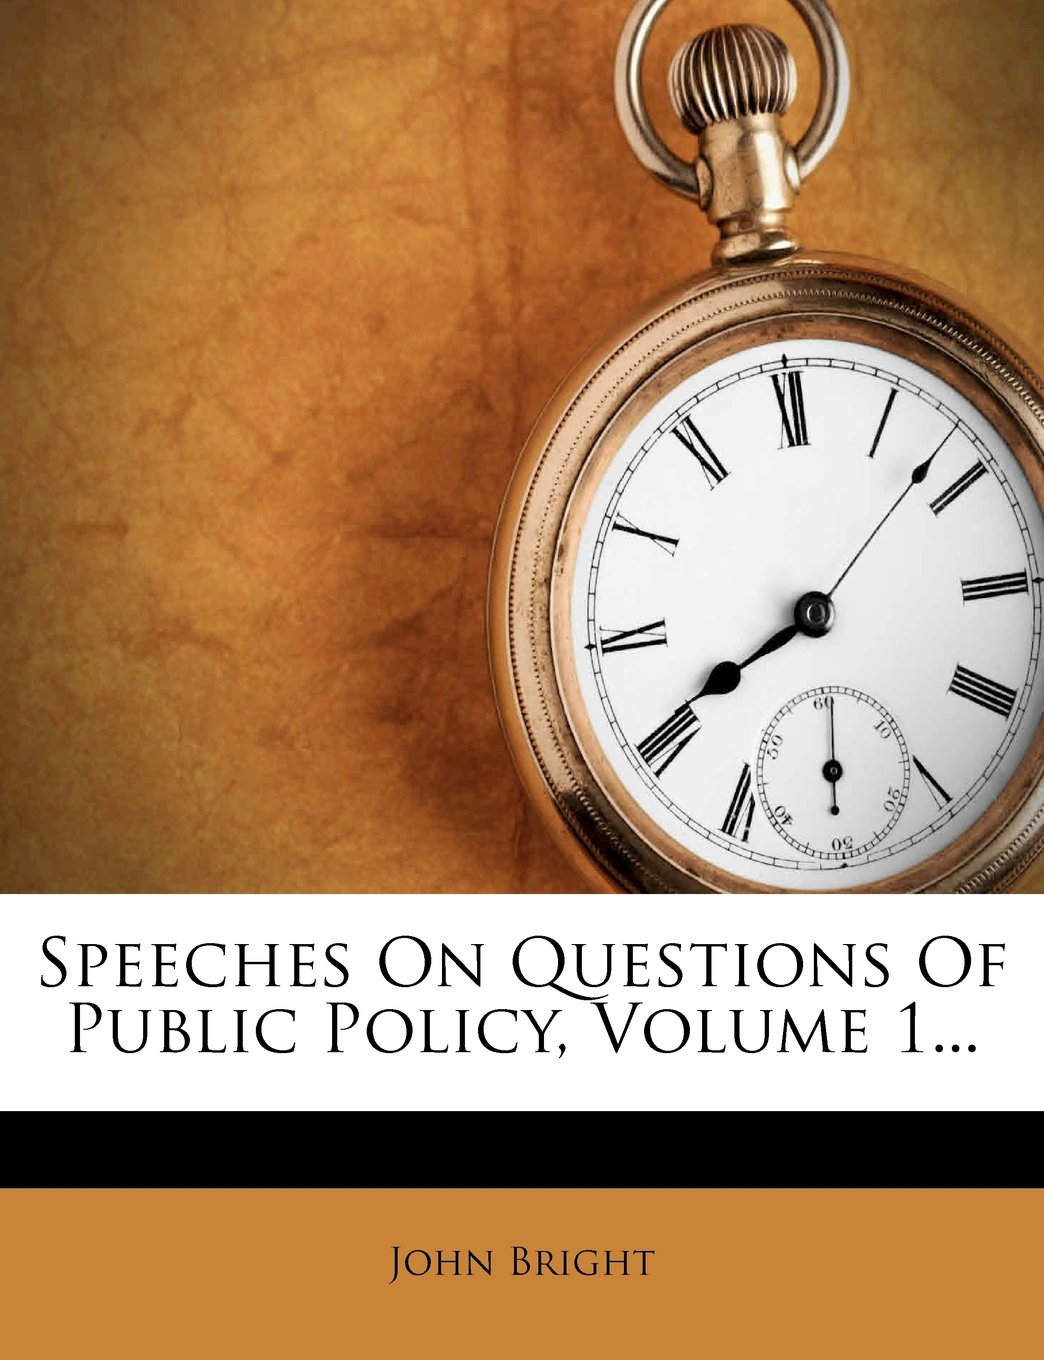 Speeches On Questions Of Public Policy, Volume 1... ebook